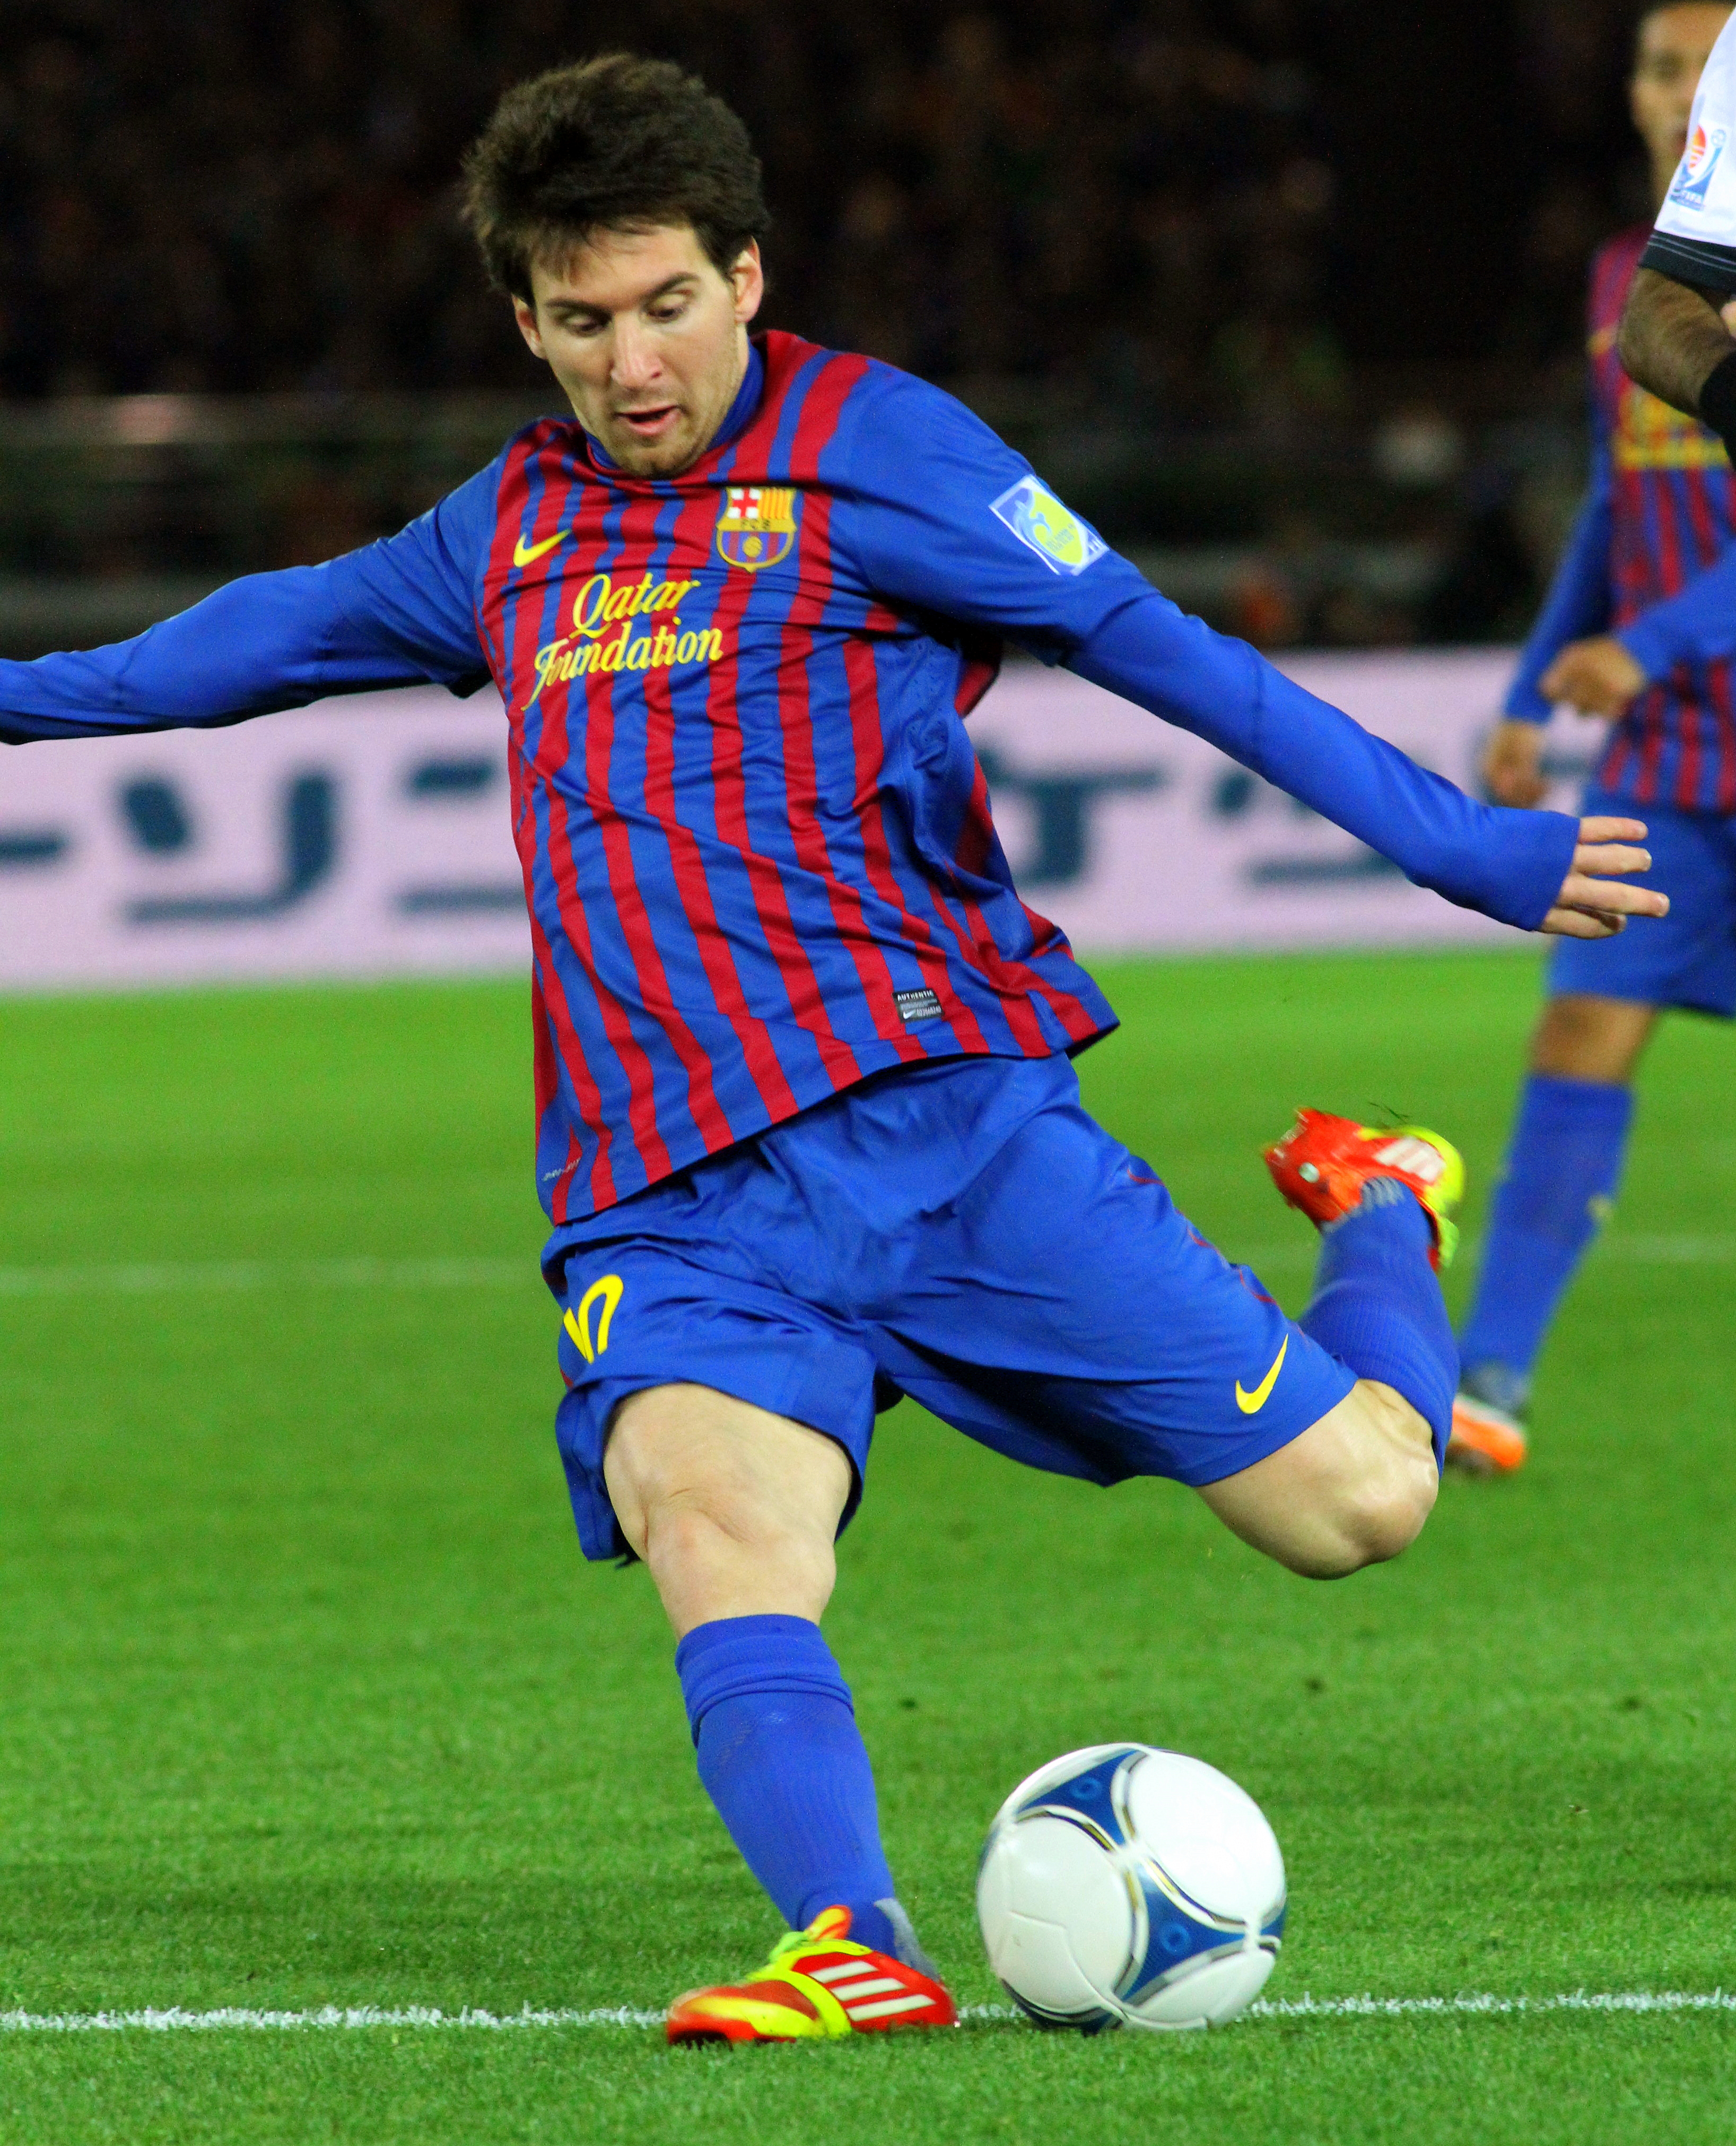 File Lionel Messi Player of the Year 2011 Wikimedia mons